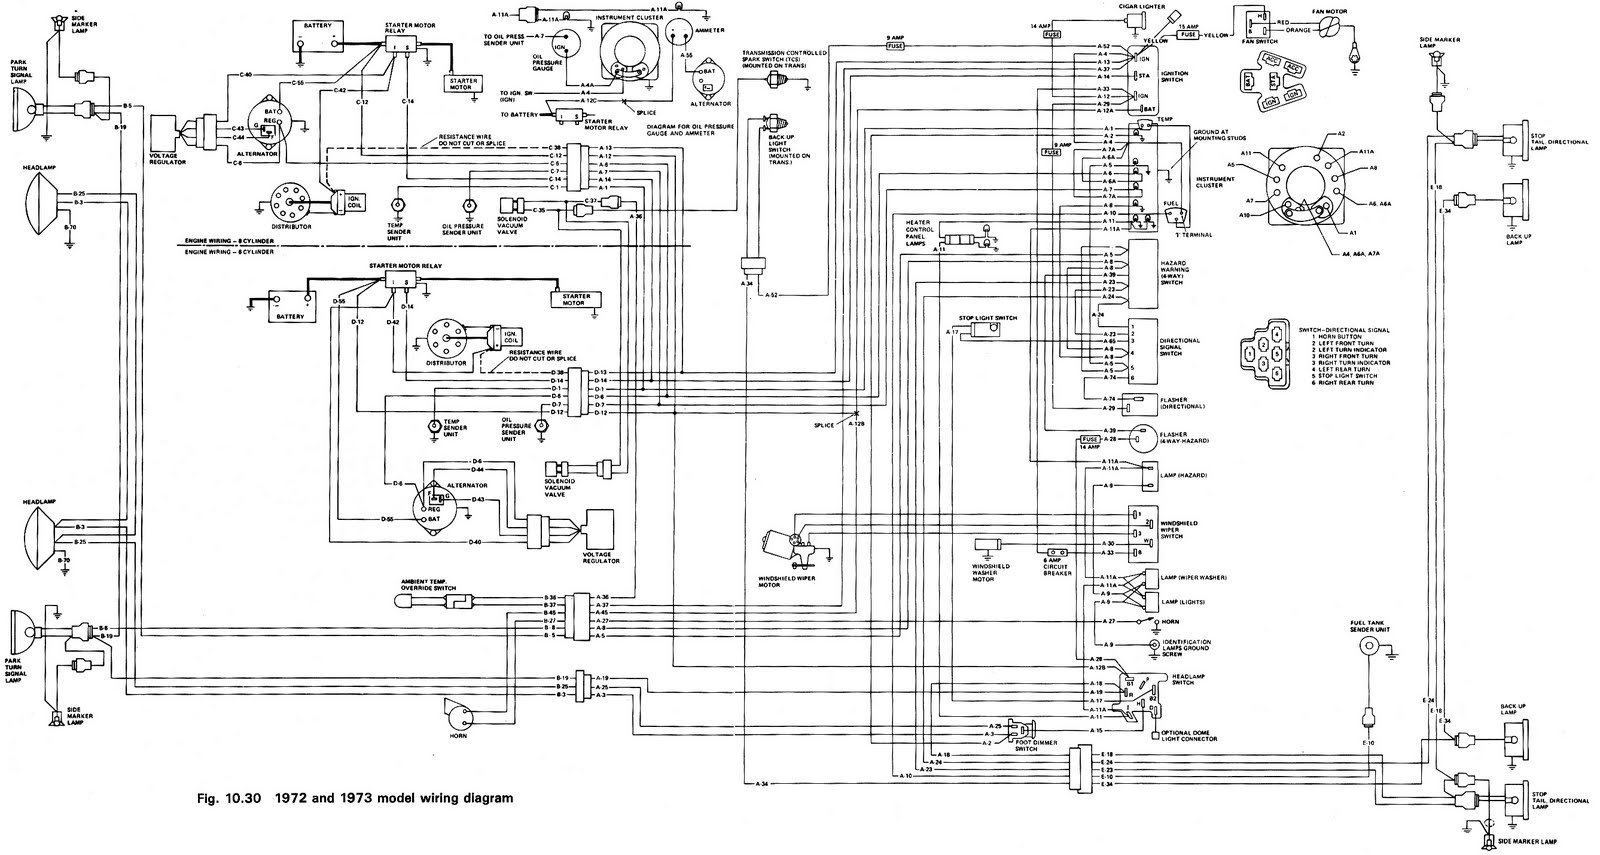 Astonishing Vw Beetle Power Steering Rack On Old Lennox Heat Pump Wiring Diagram Wiring Cloud Oideiuggs Outletorg